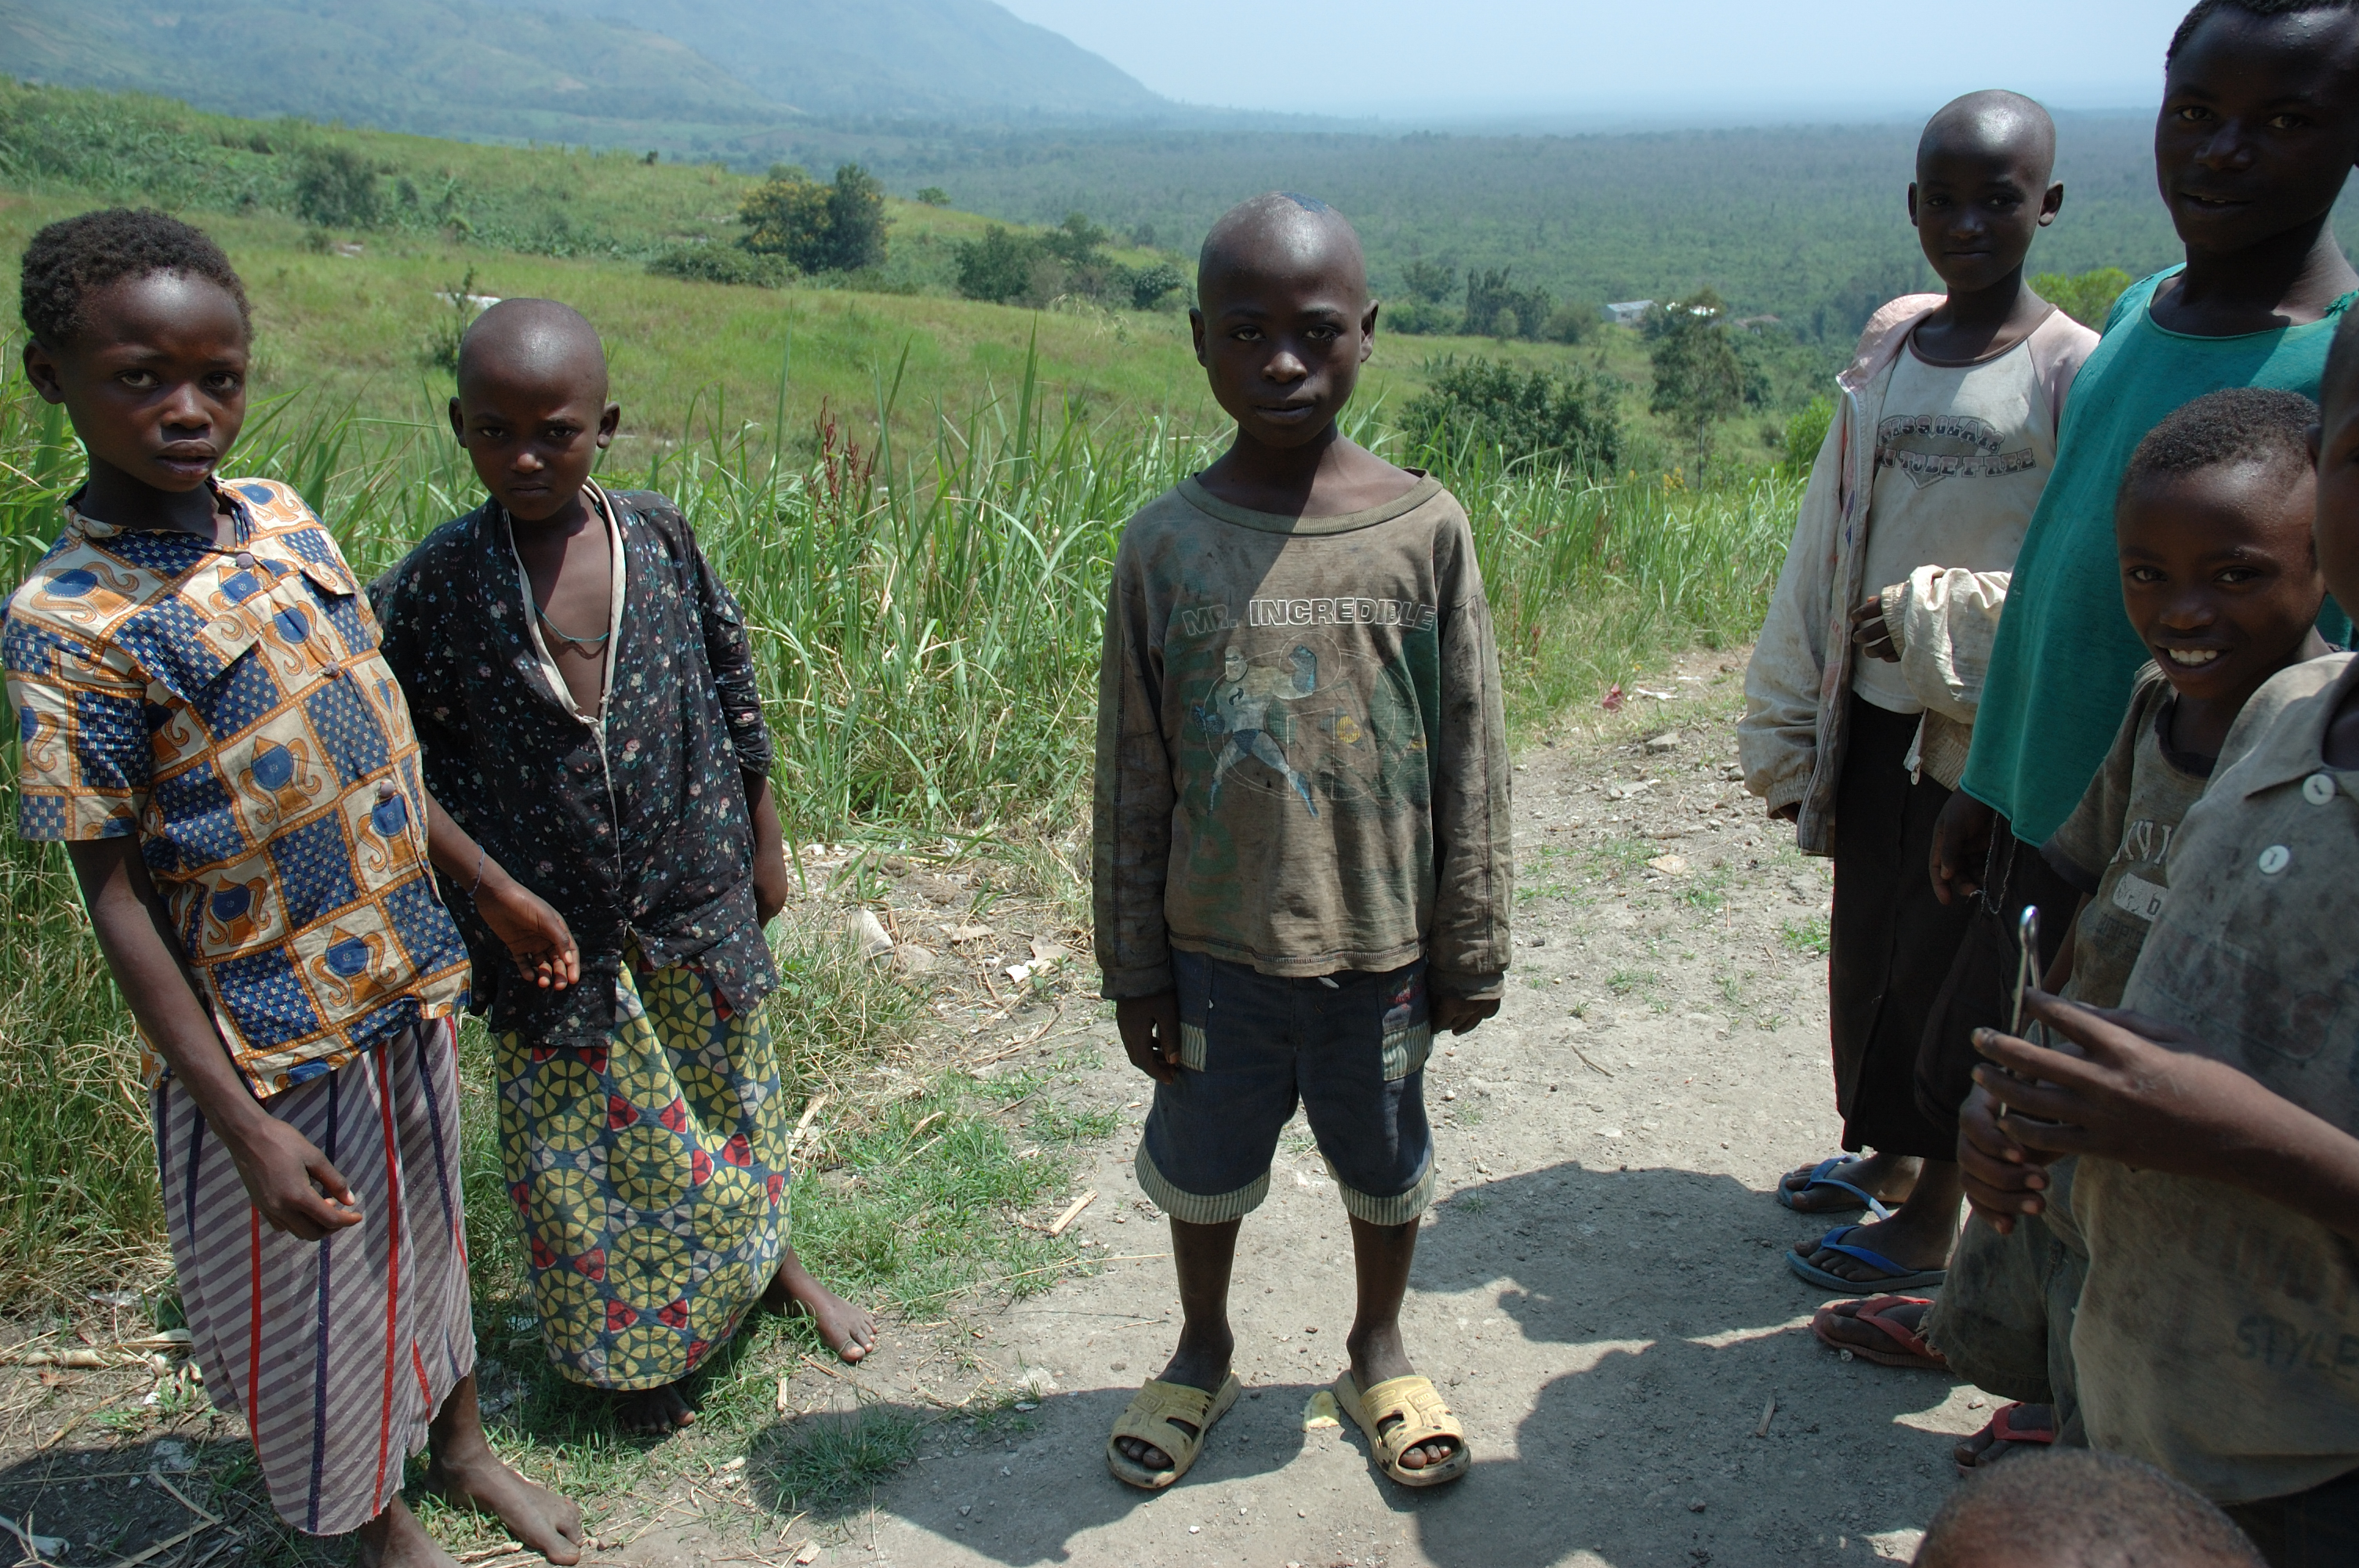 Children in Virunga National Park.jpg